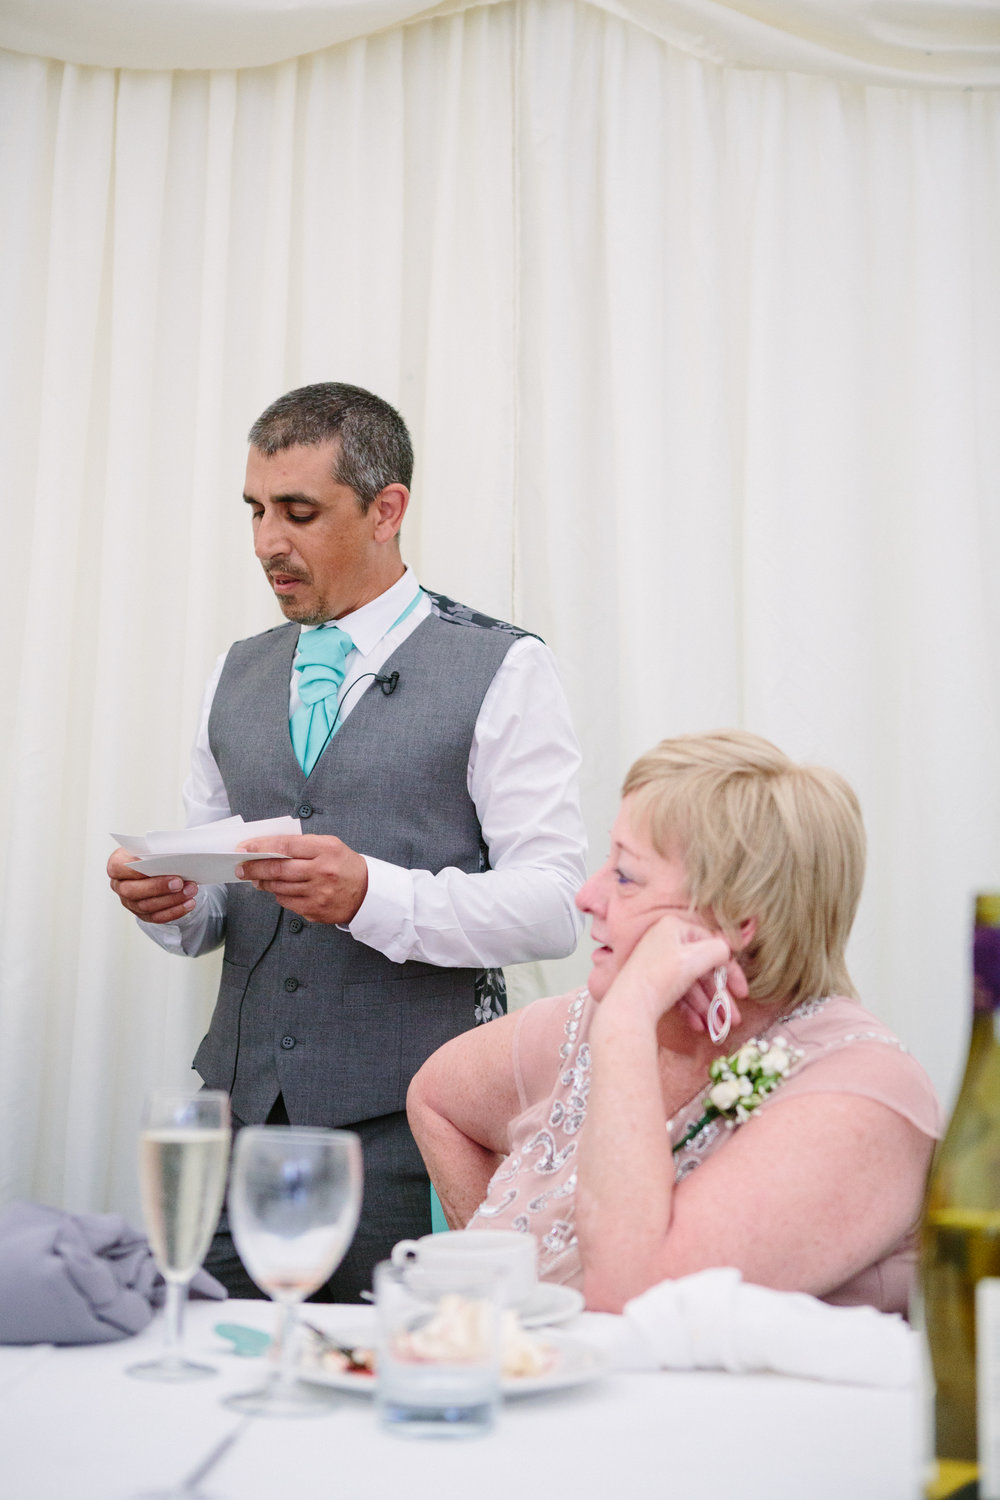 westenhangar-castle-kent-london-wedding-photography-speeches-64